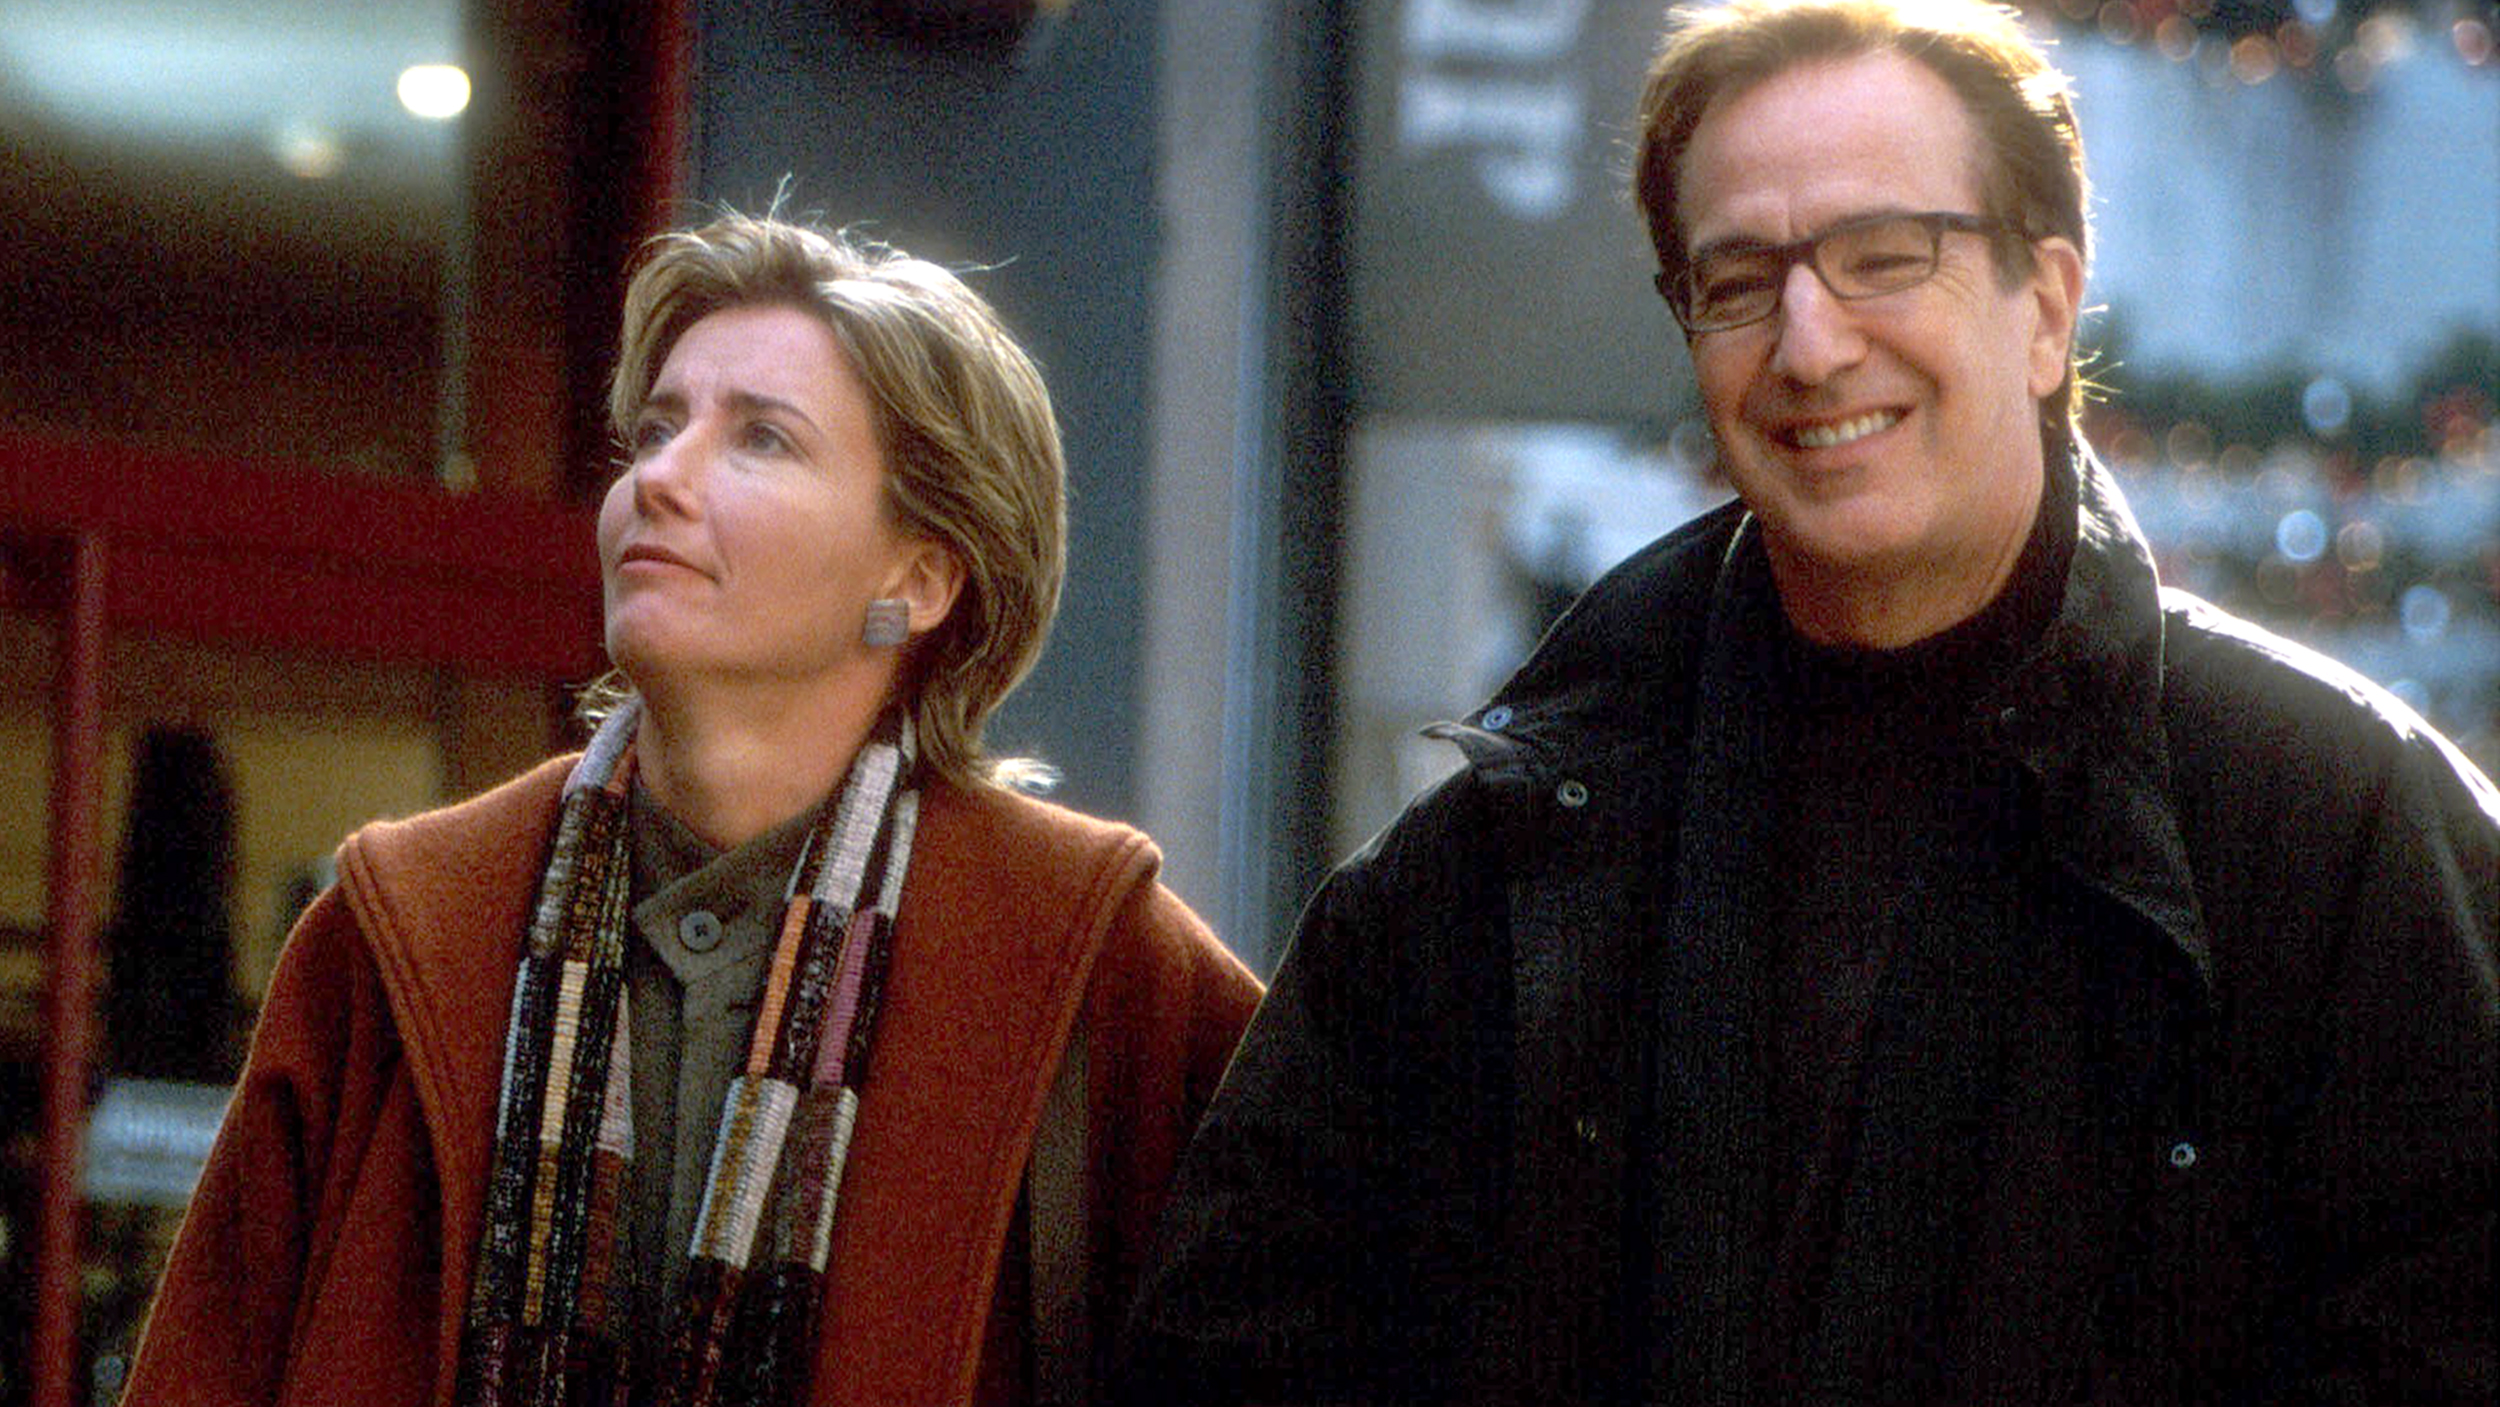 Love Actually' writer reveals character, plot details during movie screening